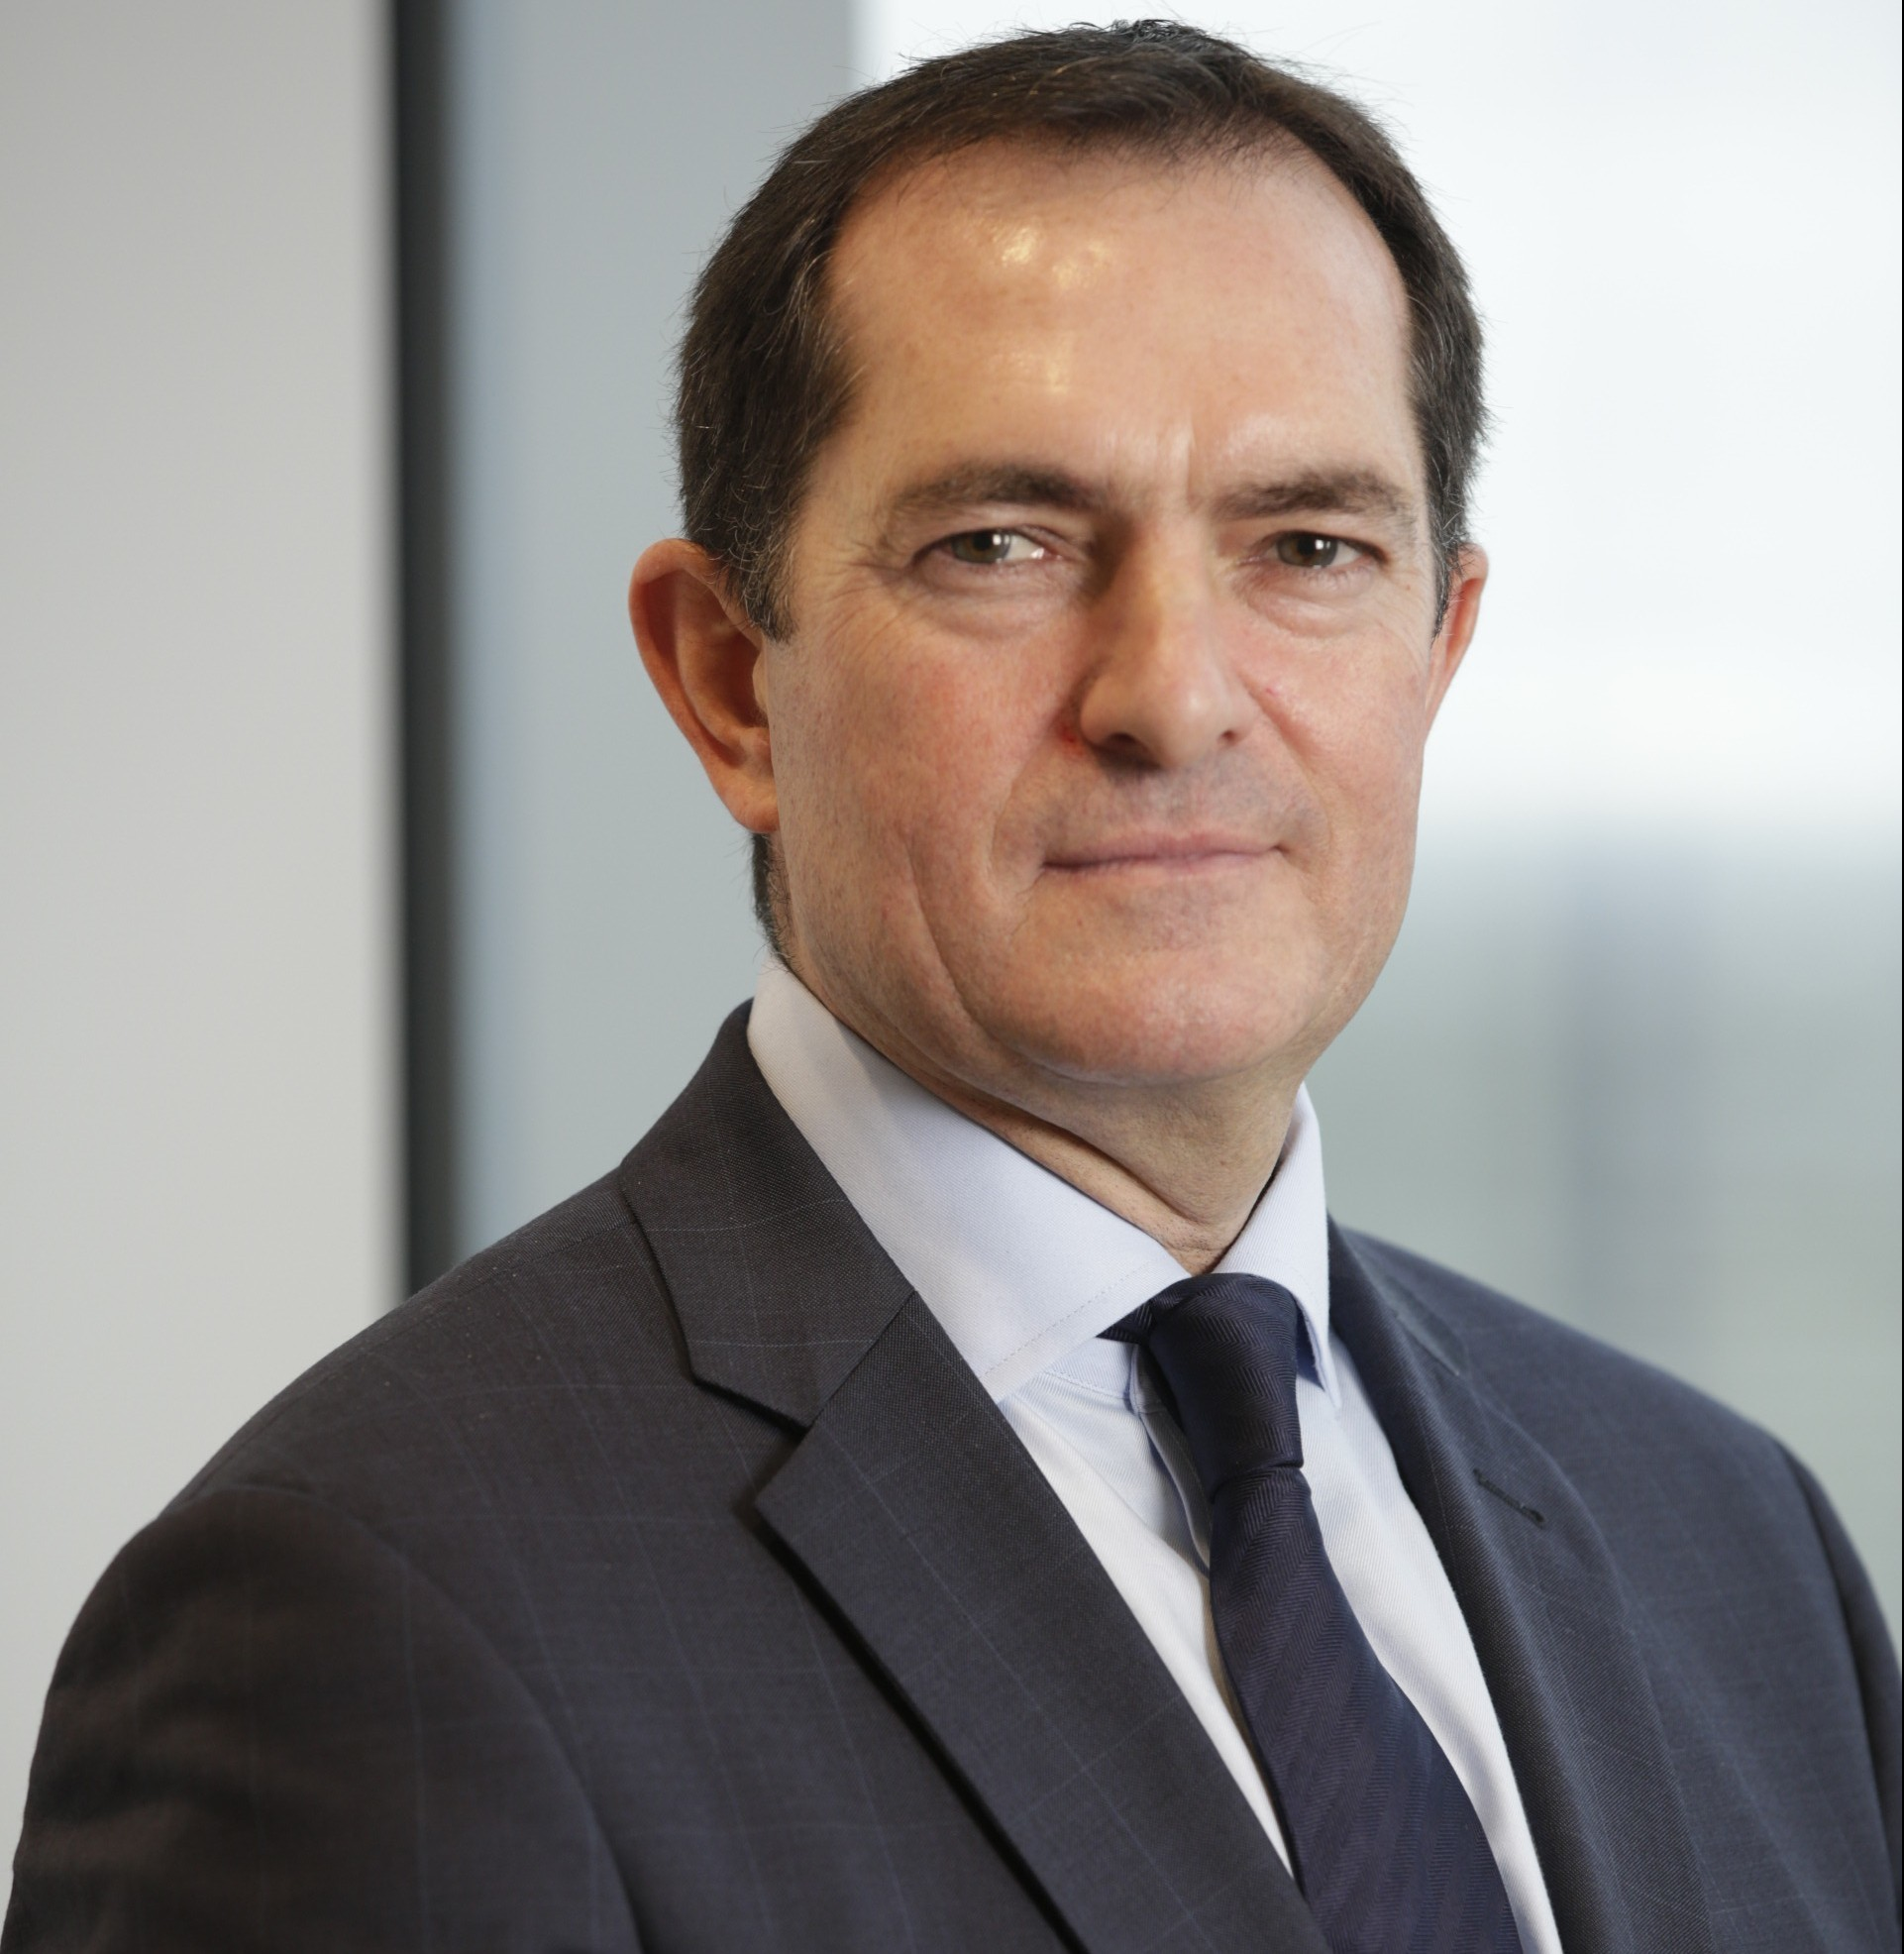 Peter Searle, the new chief exec of Airswift